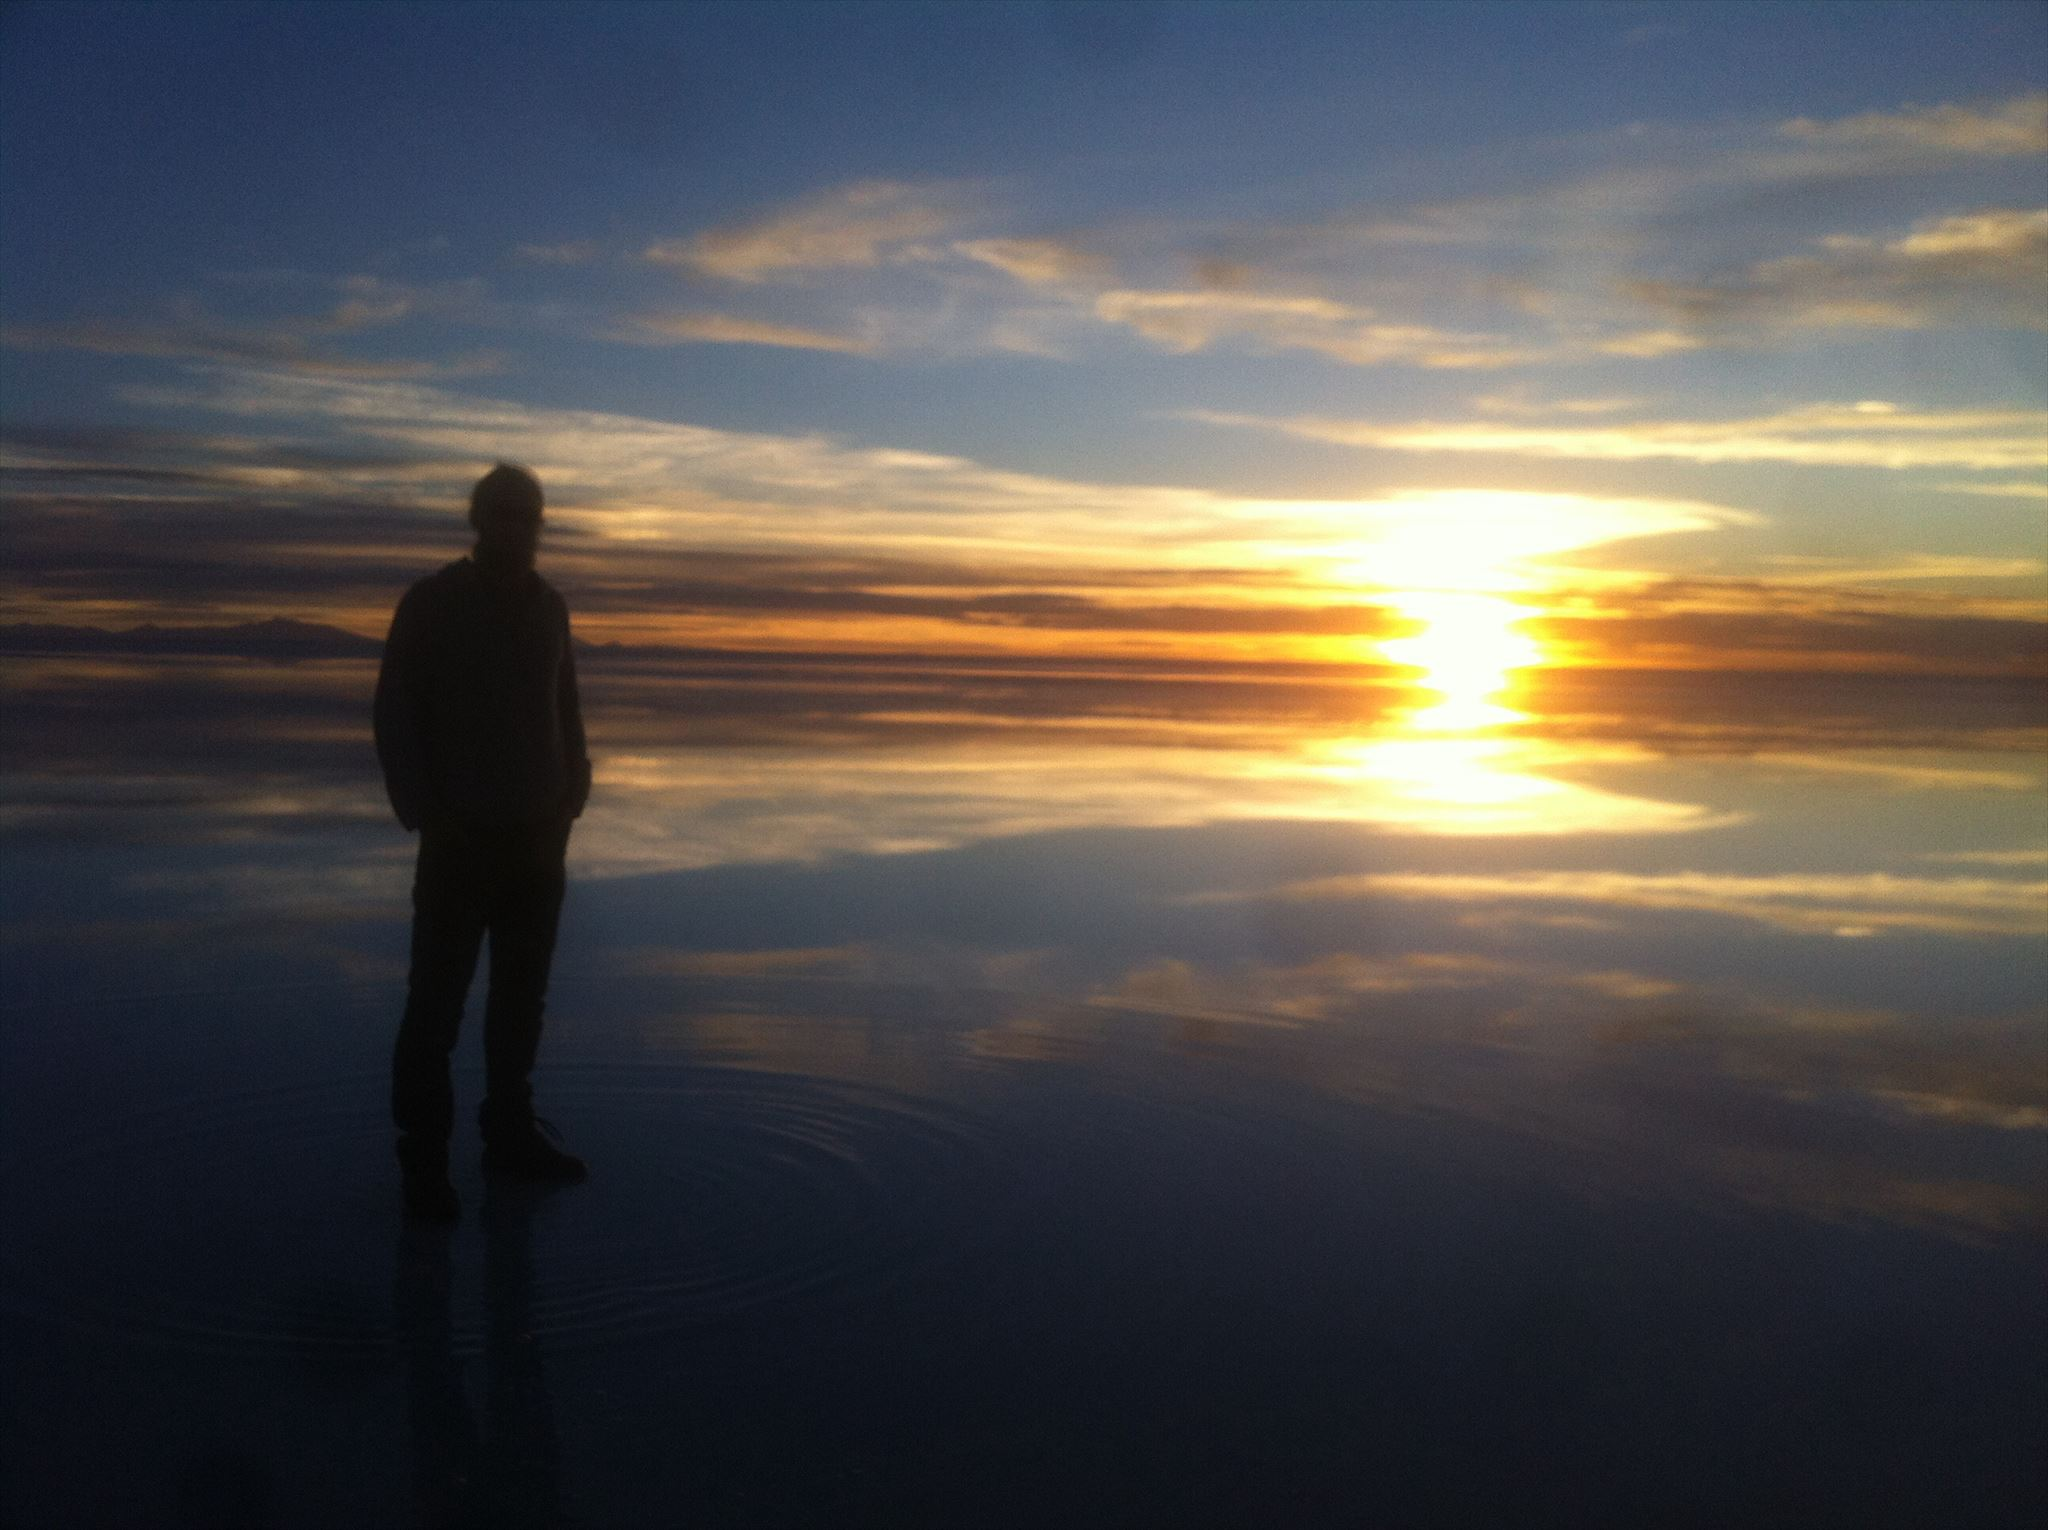 Sunset and water at the salt flats